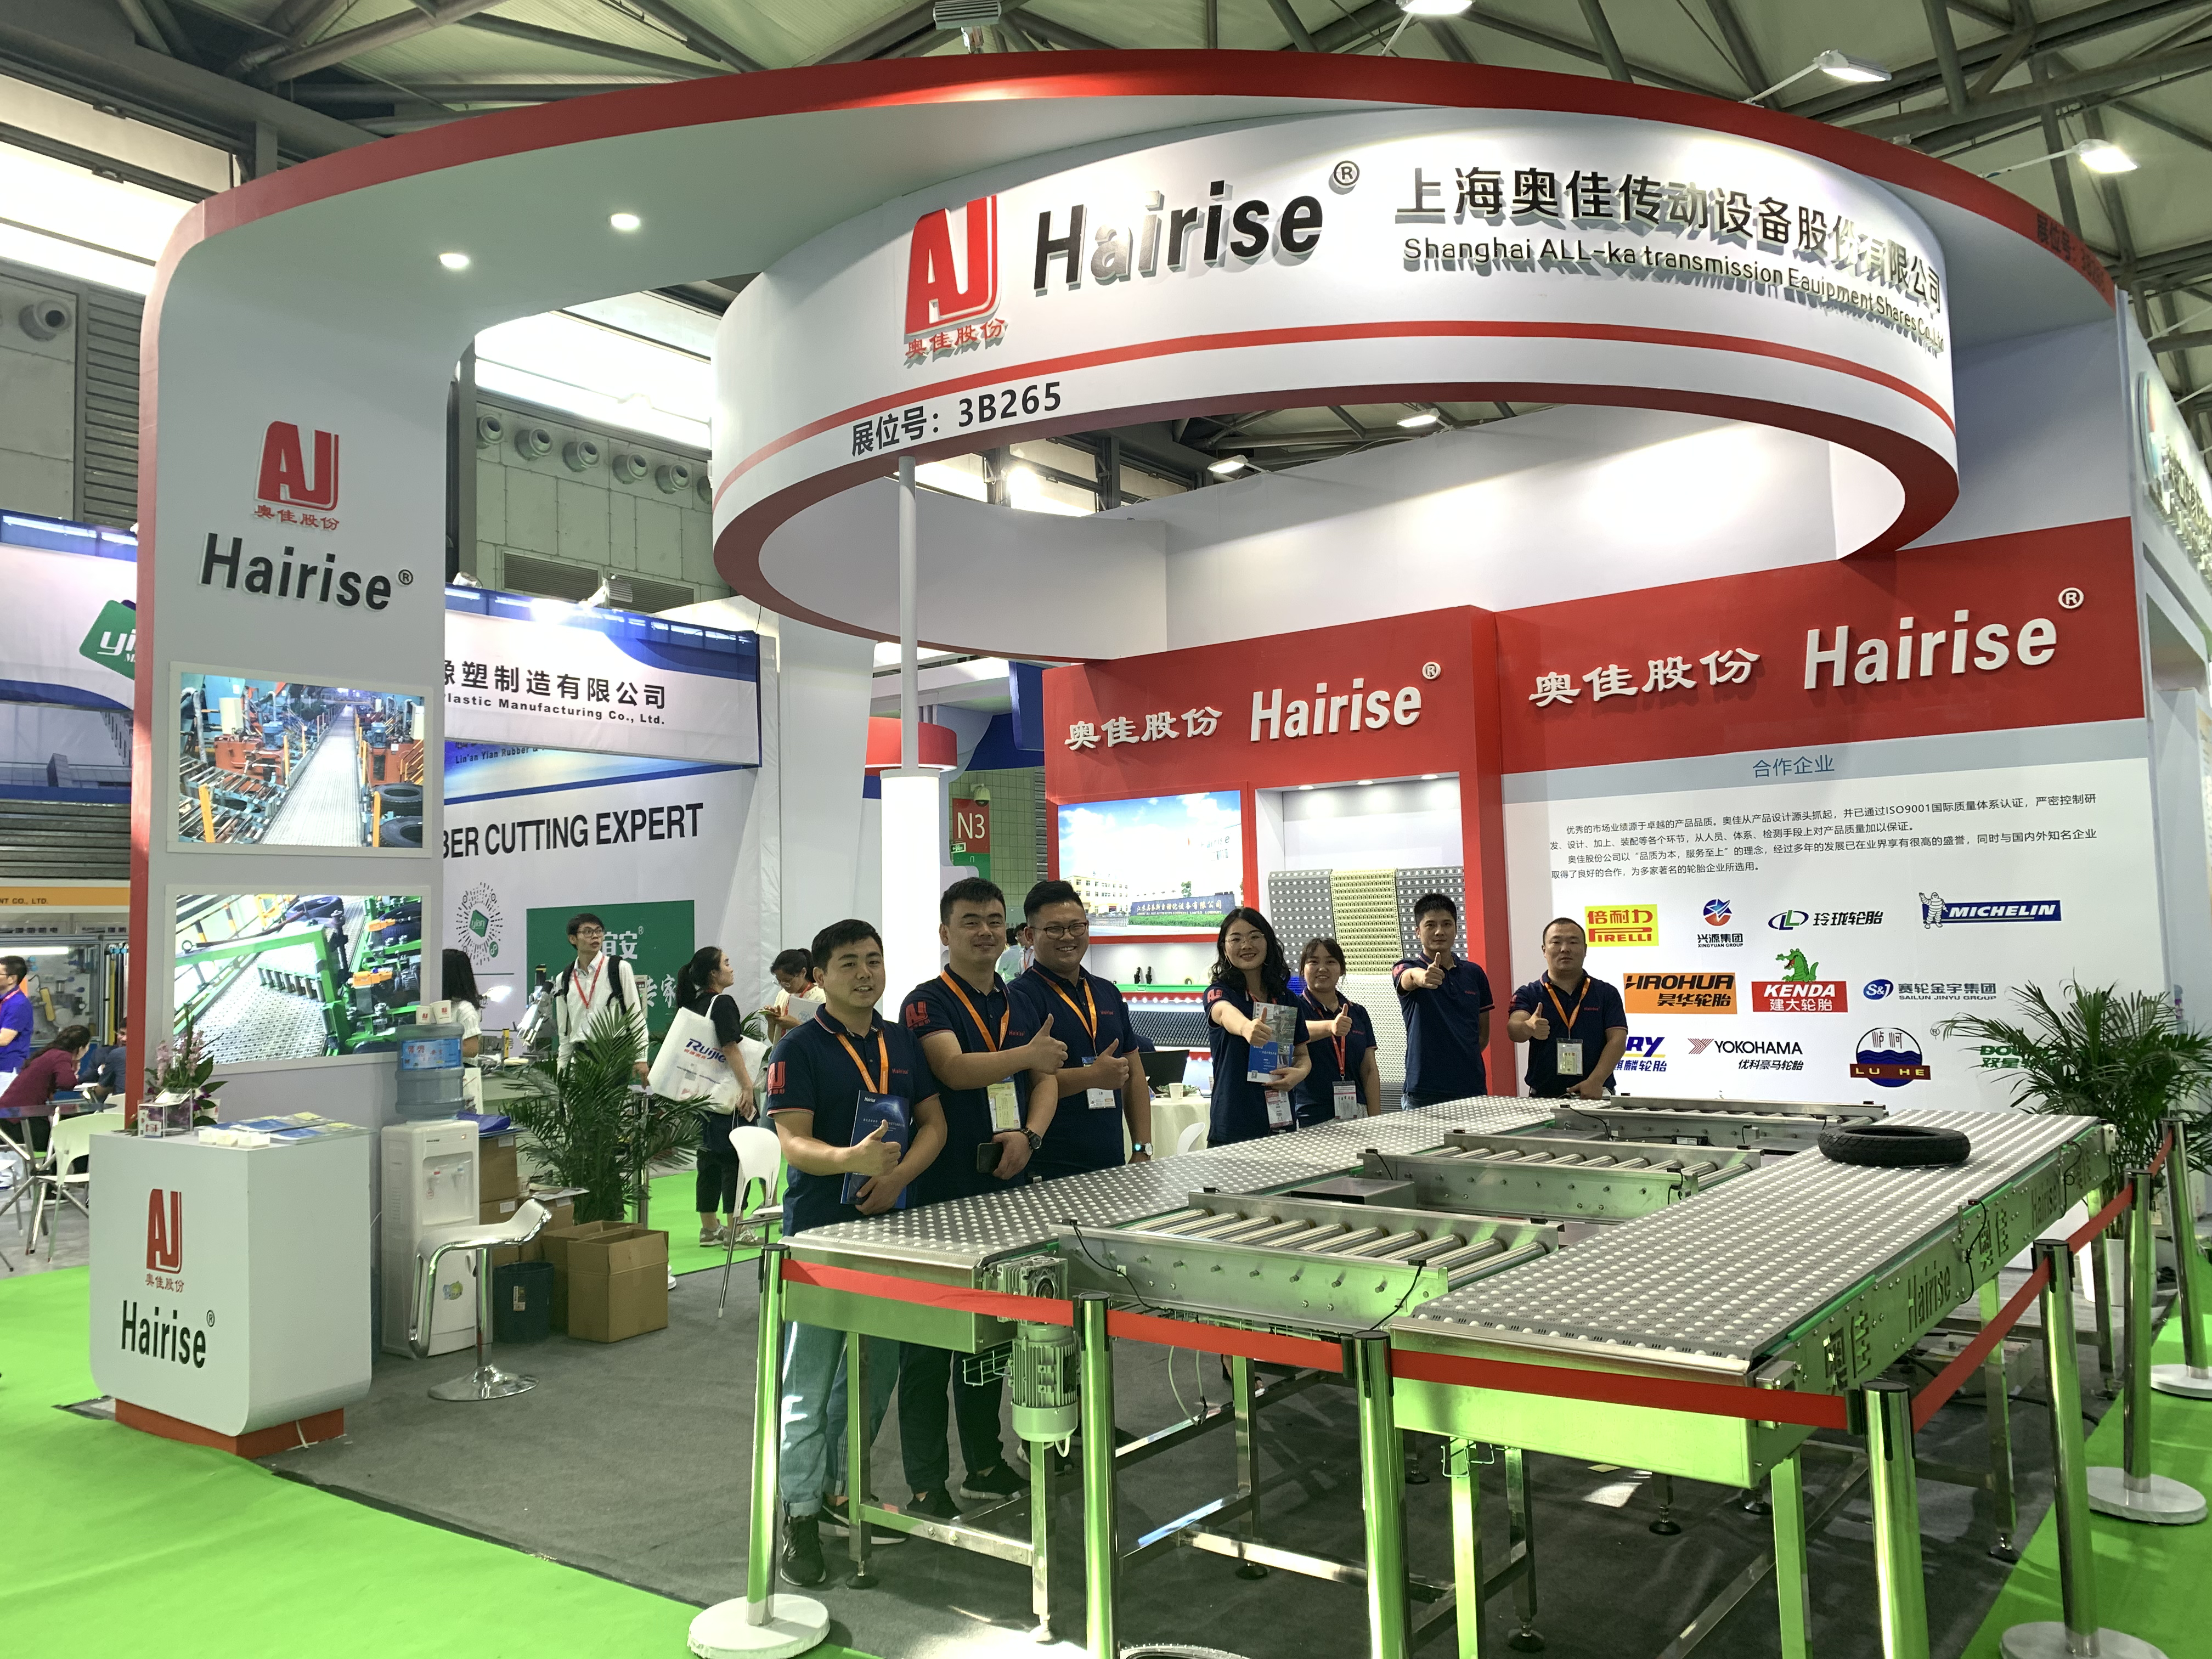 The 19th International Exhibition on Rubber Technology